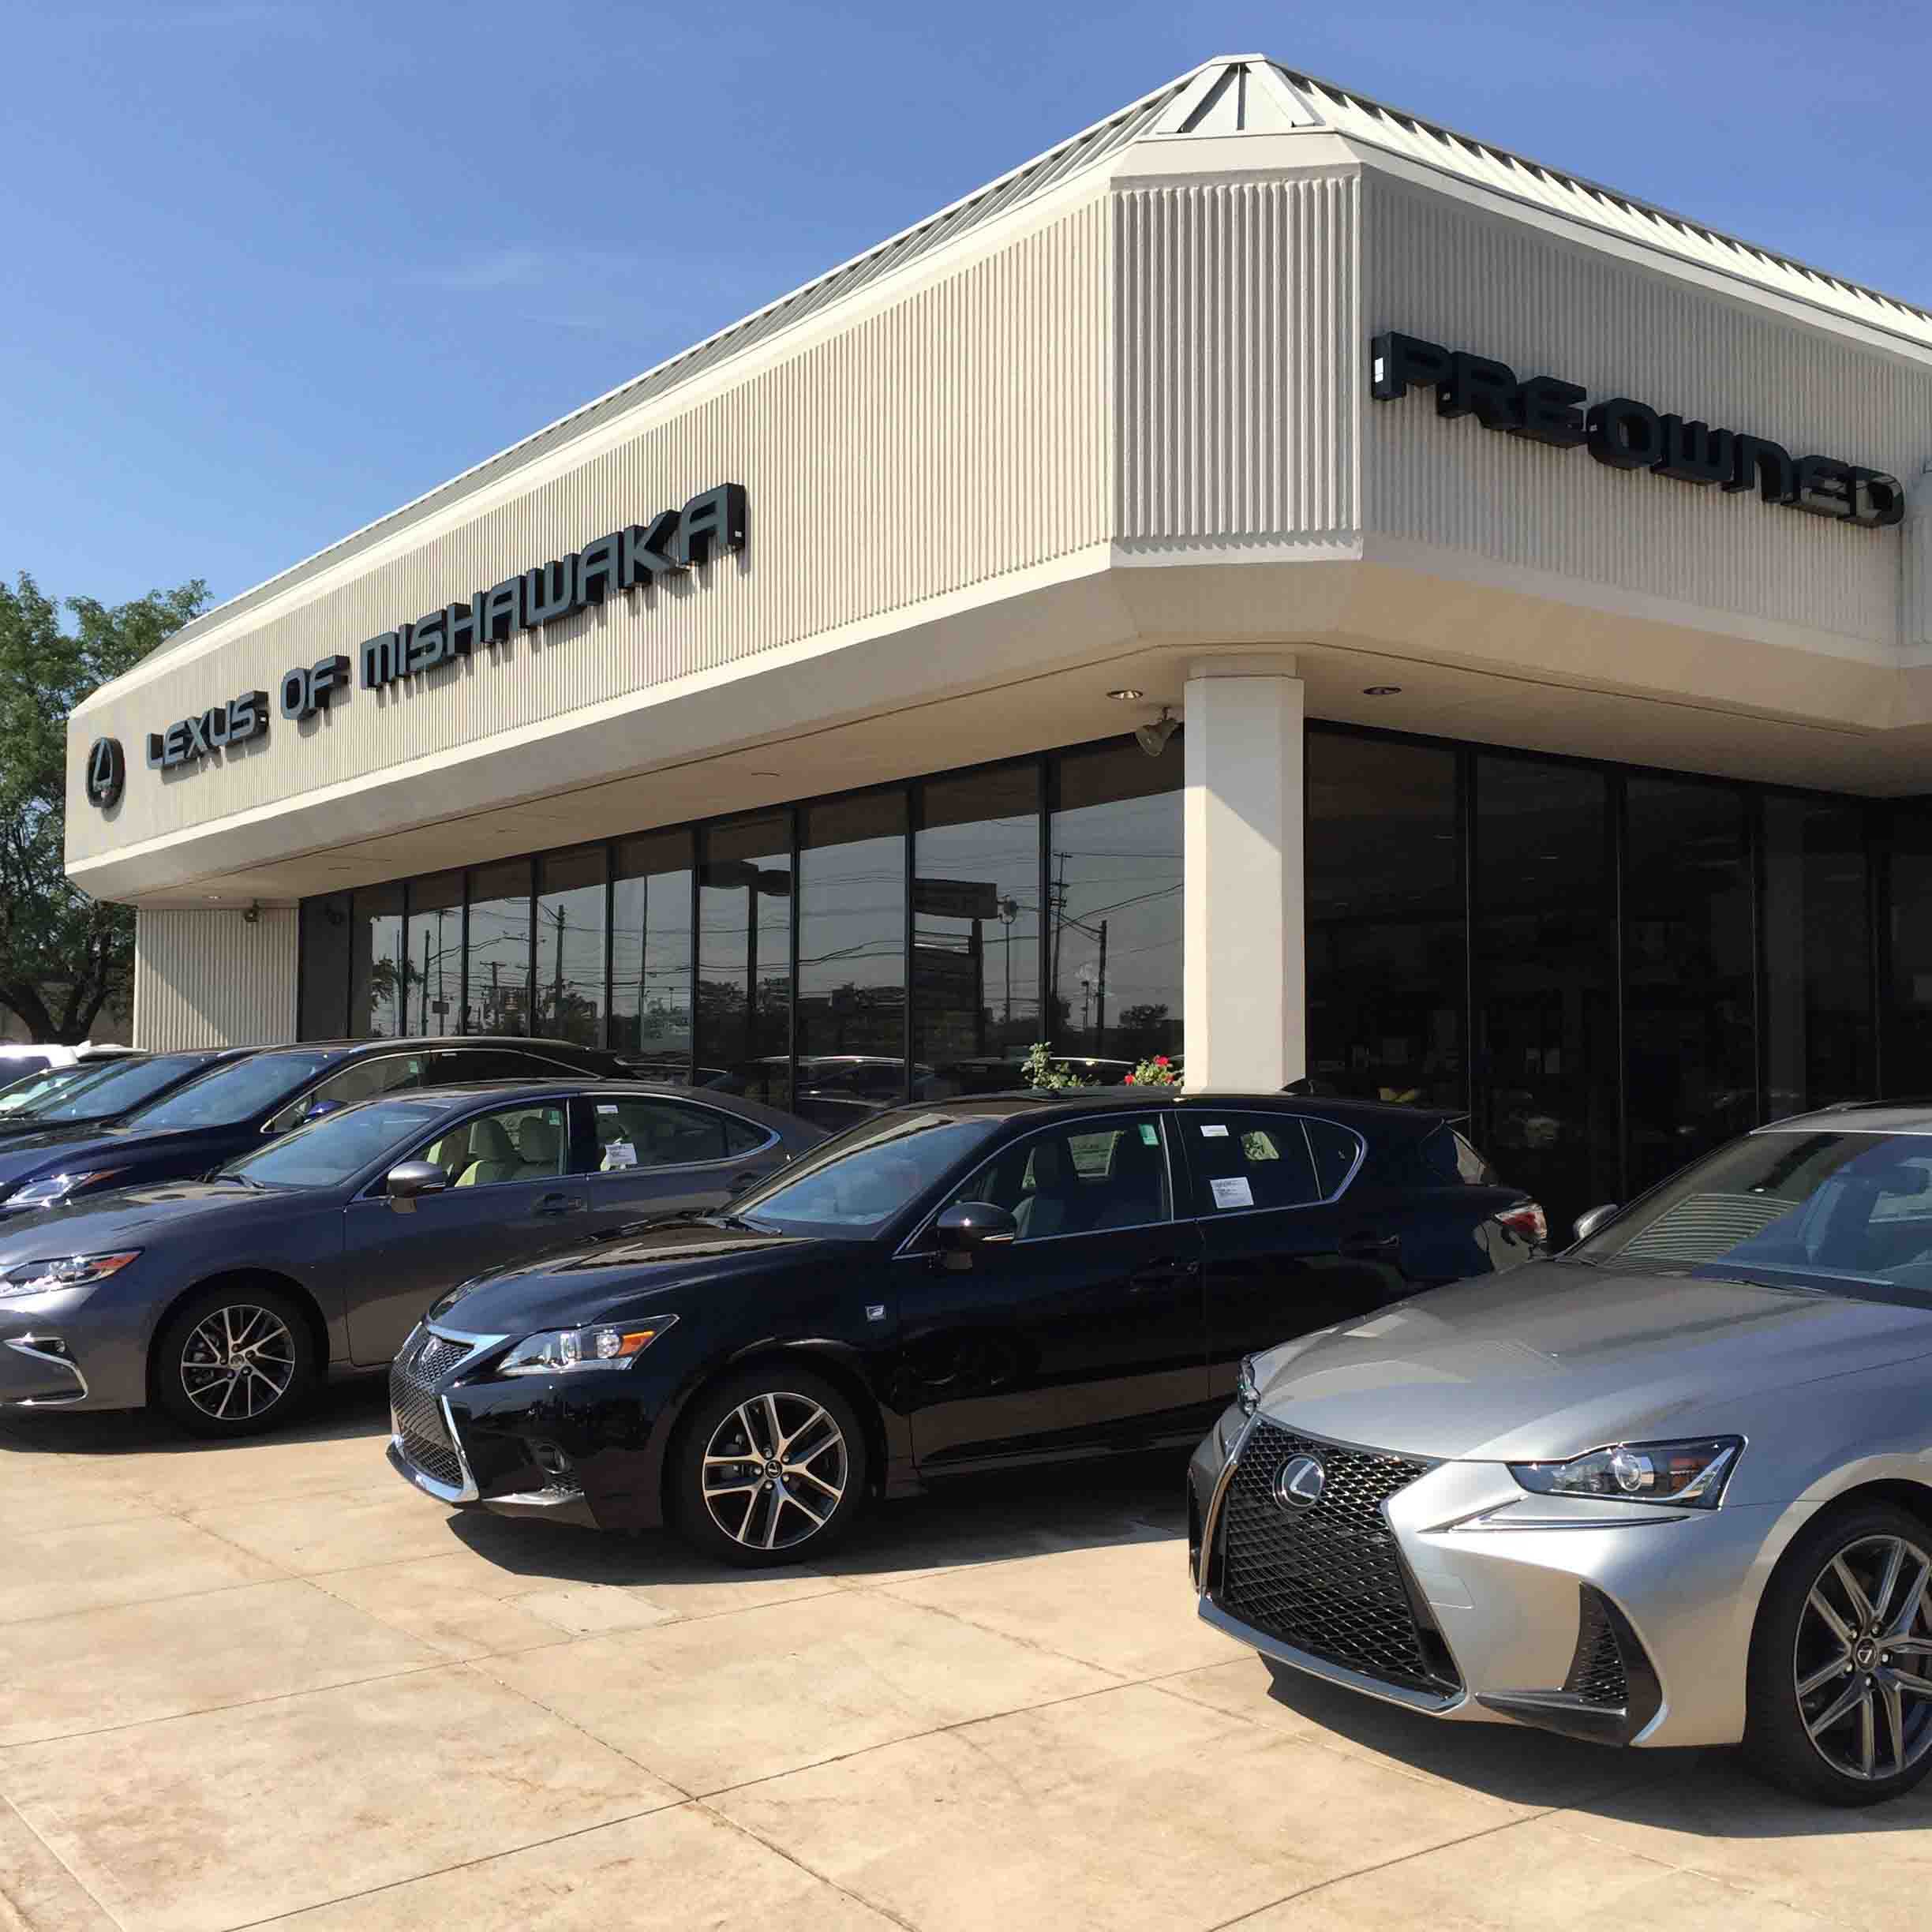 los lexus lease sales hills specials car angeles pasadena sport west motors and hollywood new f in a auto burbank leasingnew glendale leasing beverly inc